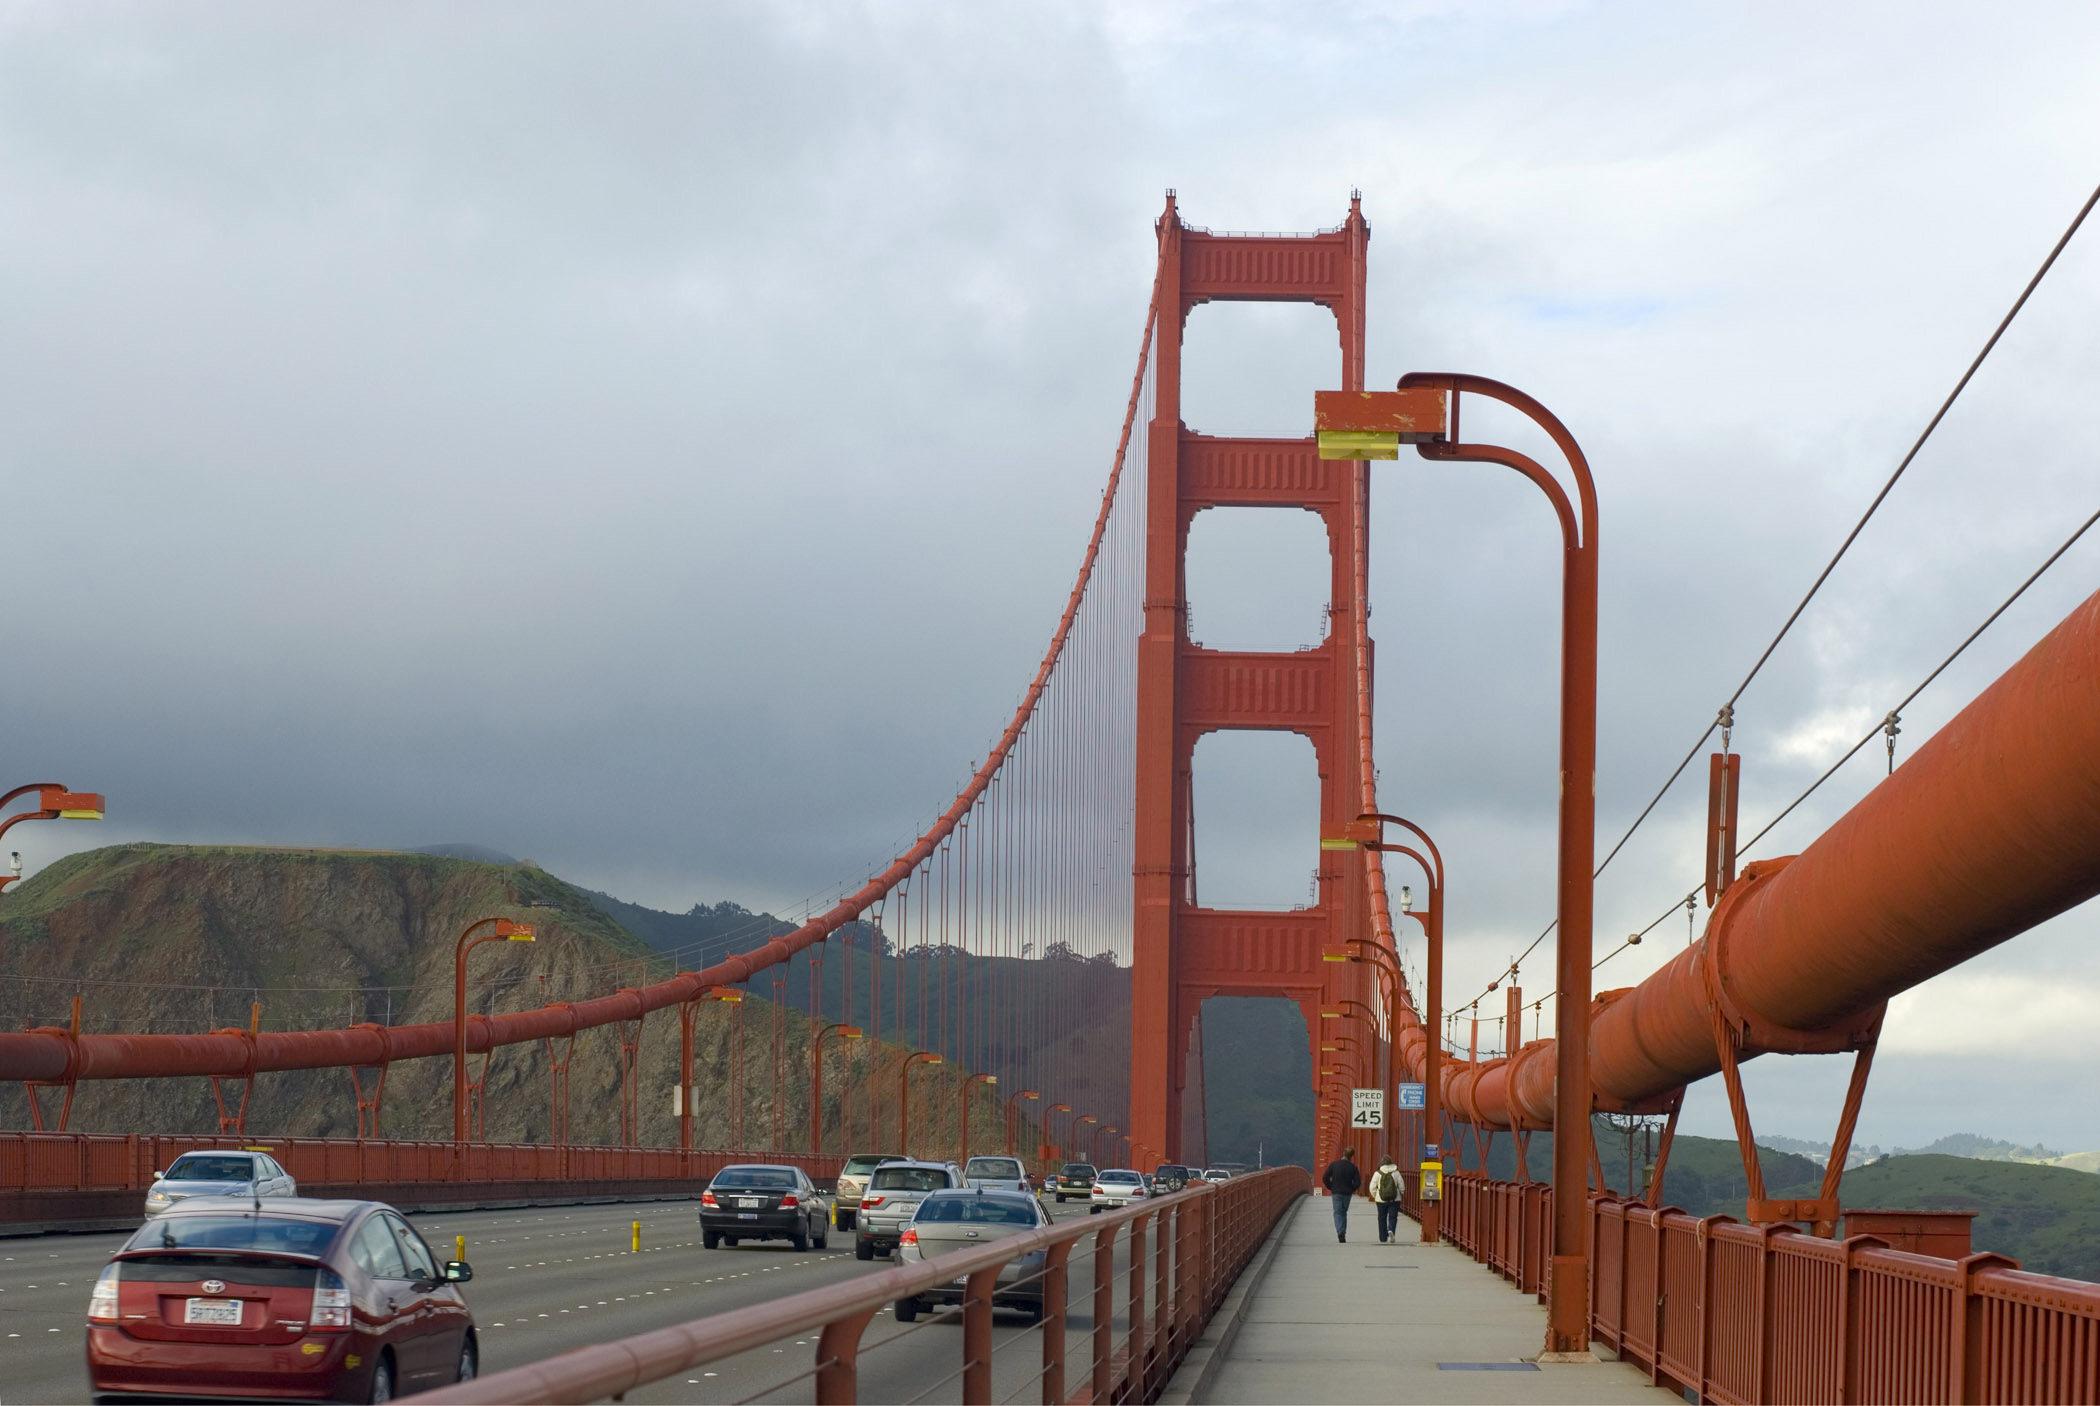 Walk Along the Golden Gate Bridge San Francisco. Captured with Mountains in the distance with a Stormy Sky Background.